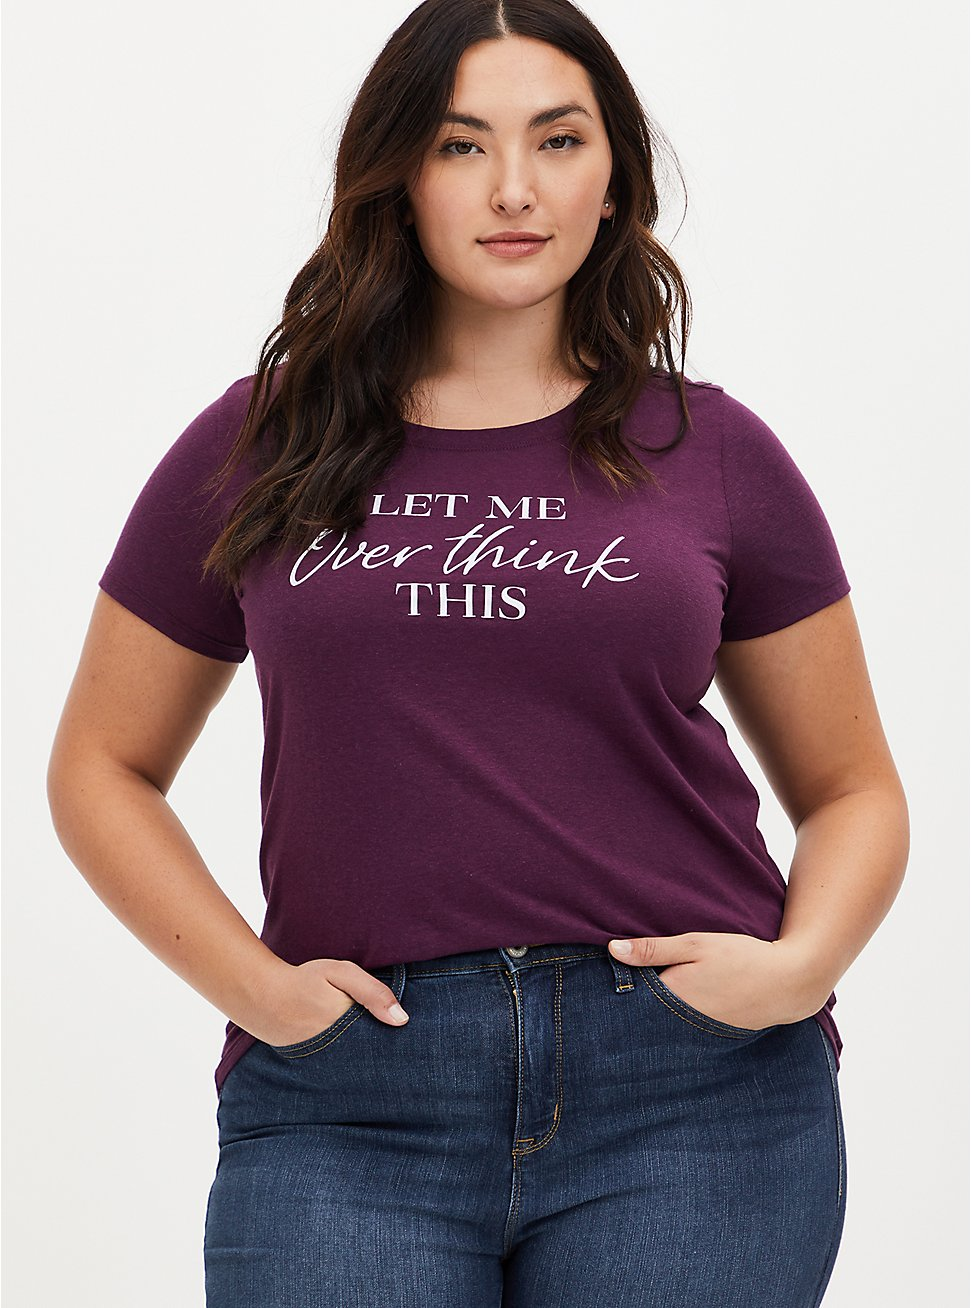 Plus Size Overthink Slim Fit Crew Tee - Grape Purple, , hi-res